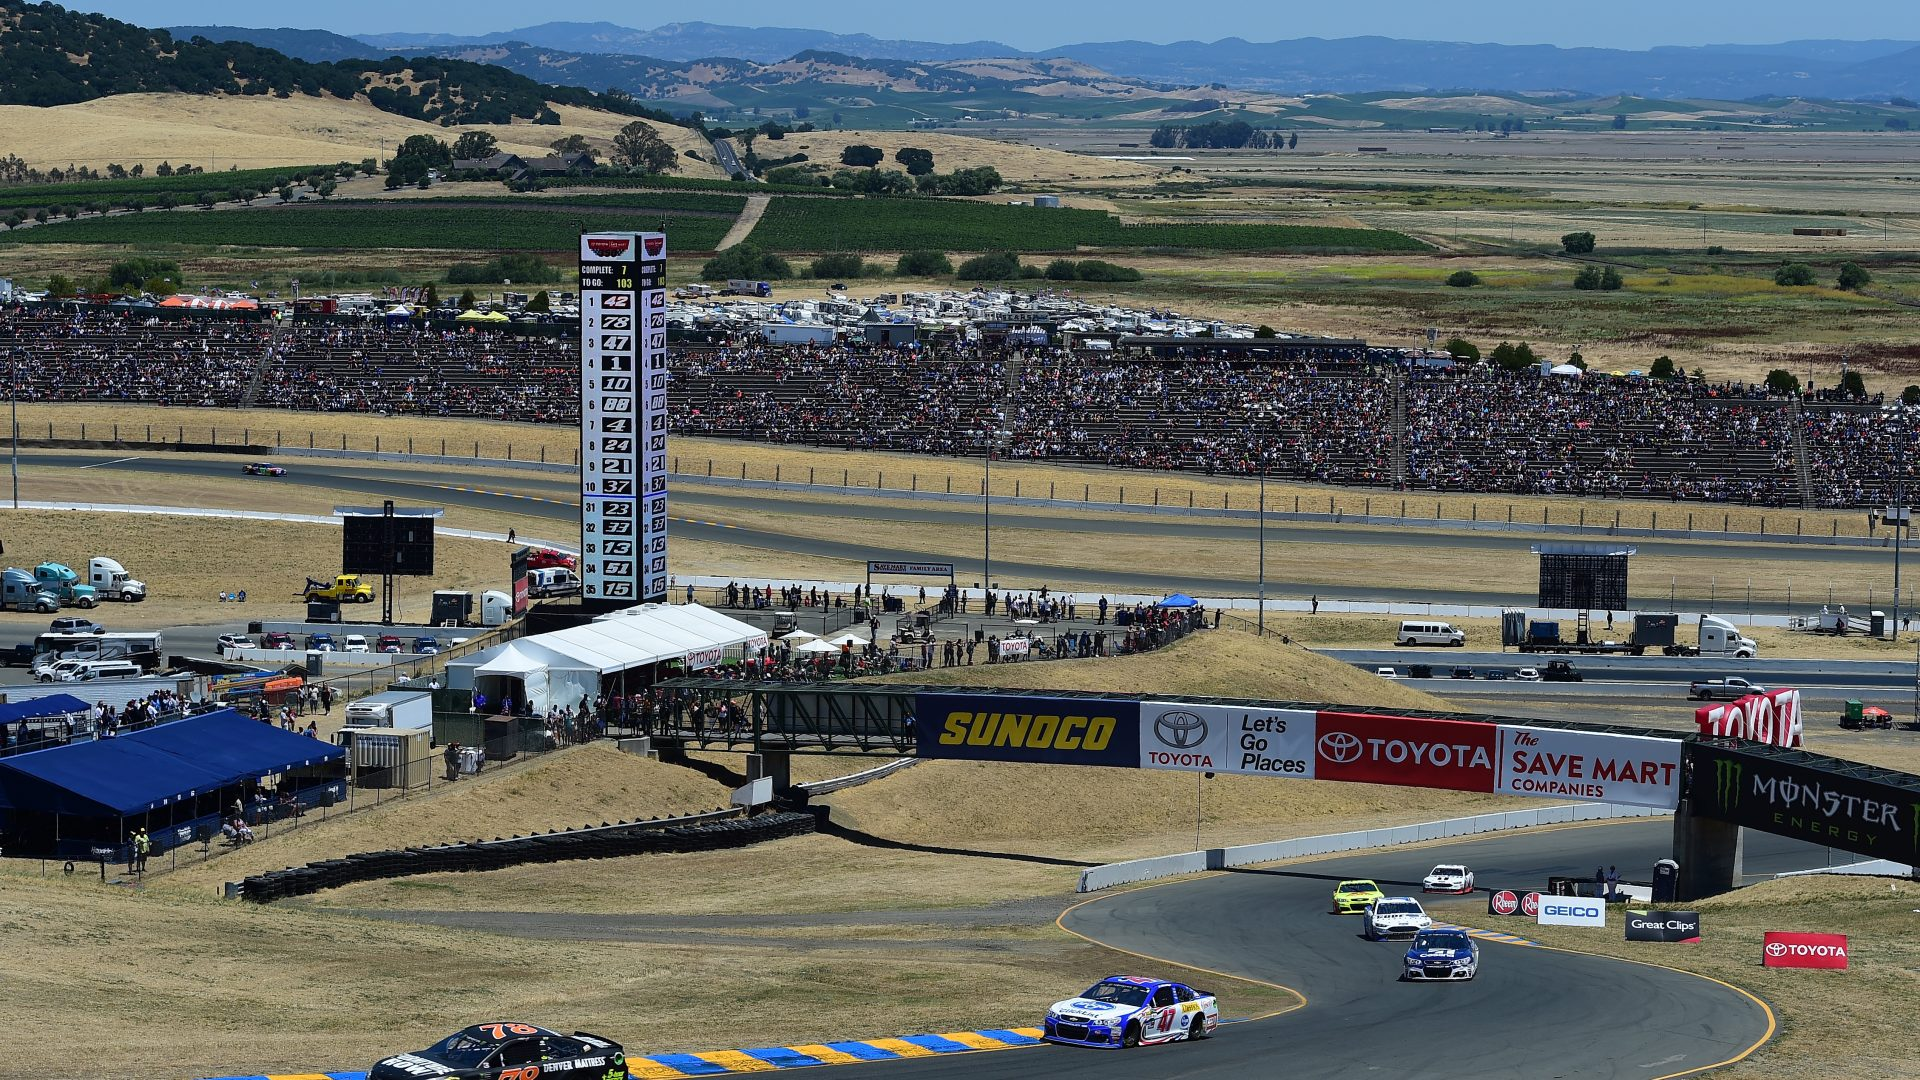 weekend schedule for sonoma raceway and gateway motorsports park